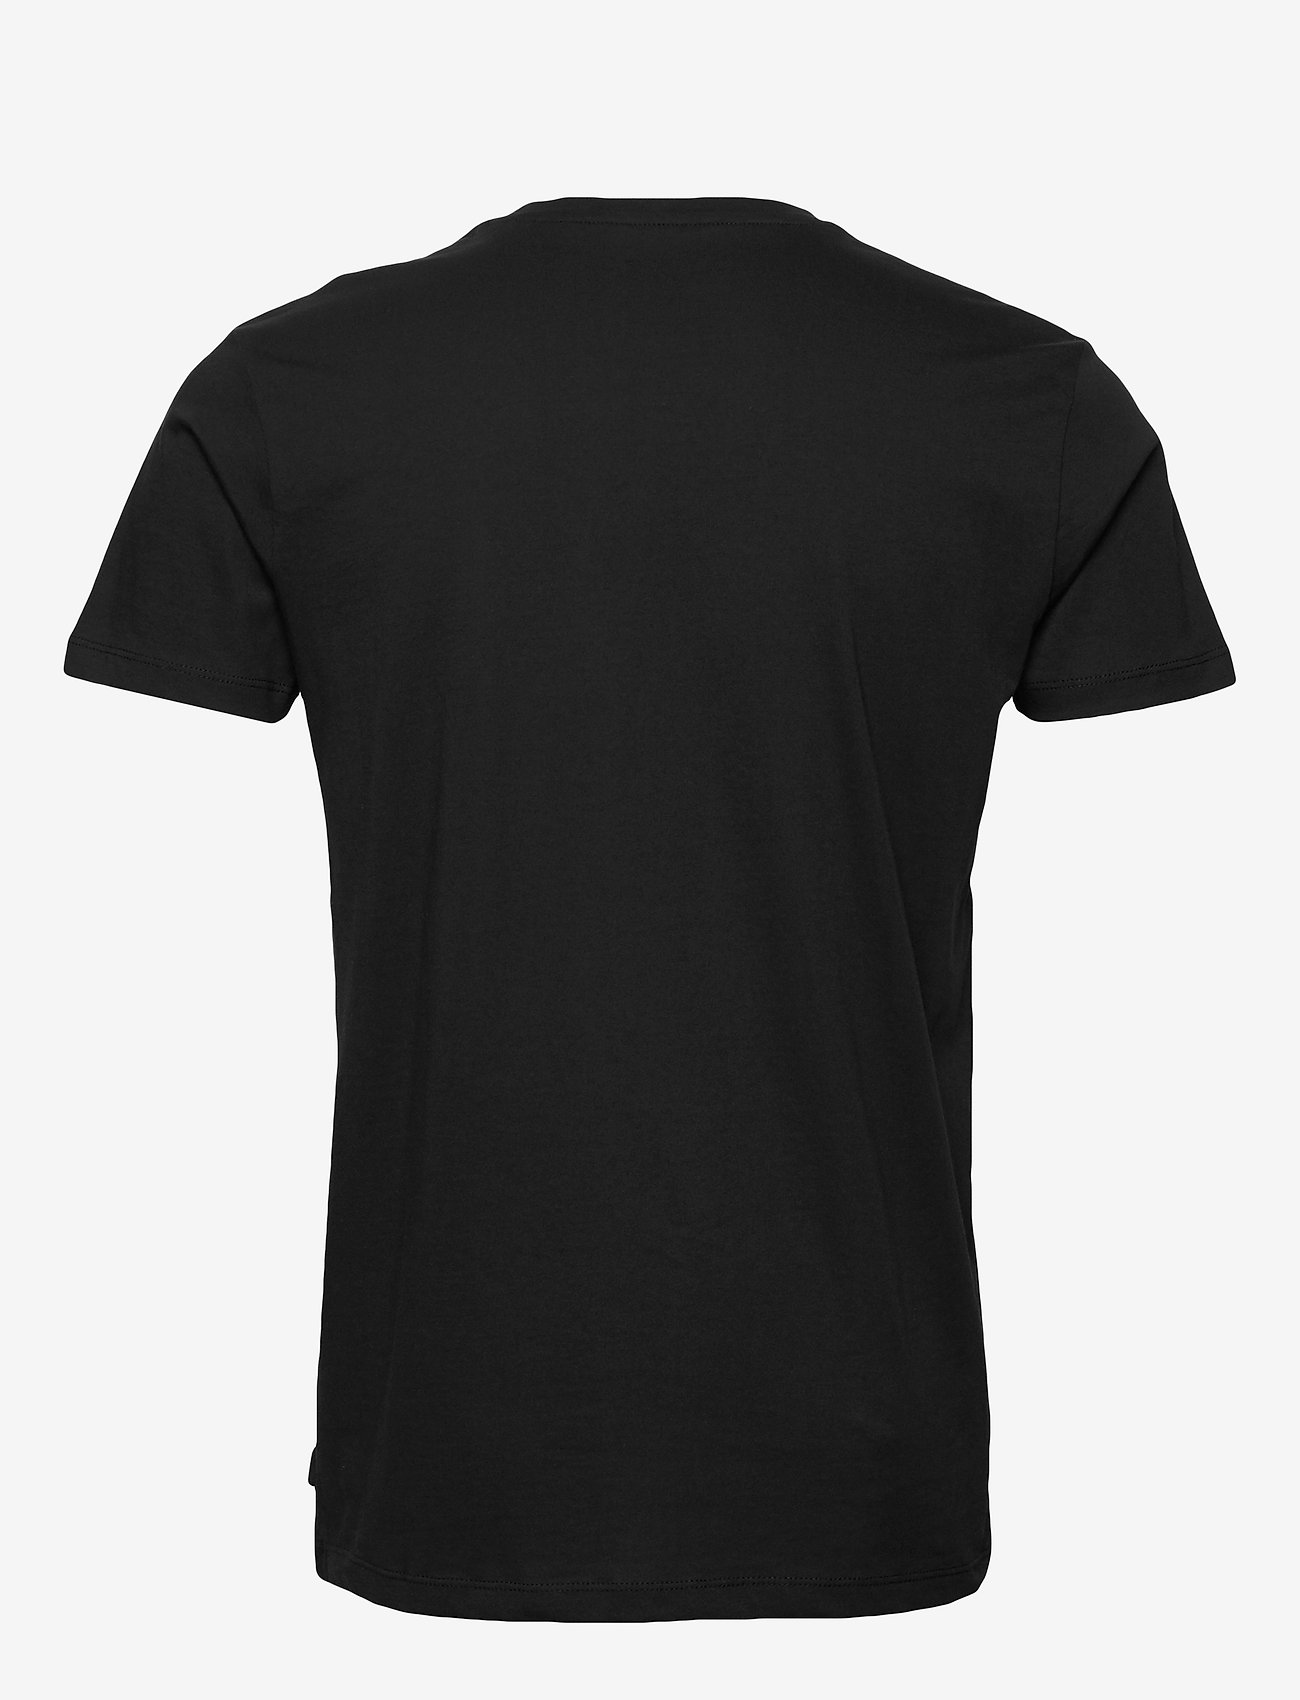 Esprit Casual - T-Shirts - basic t-shirts - black - 1